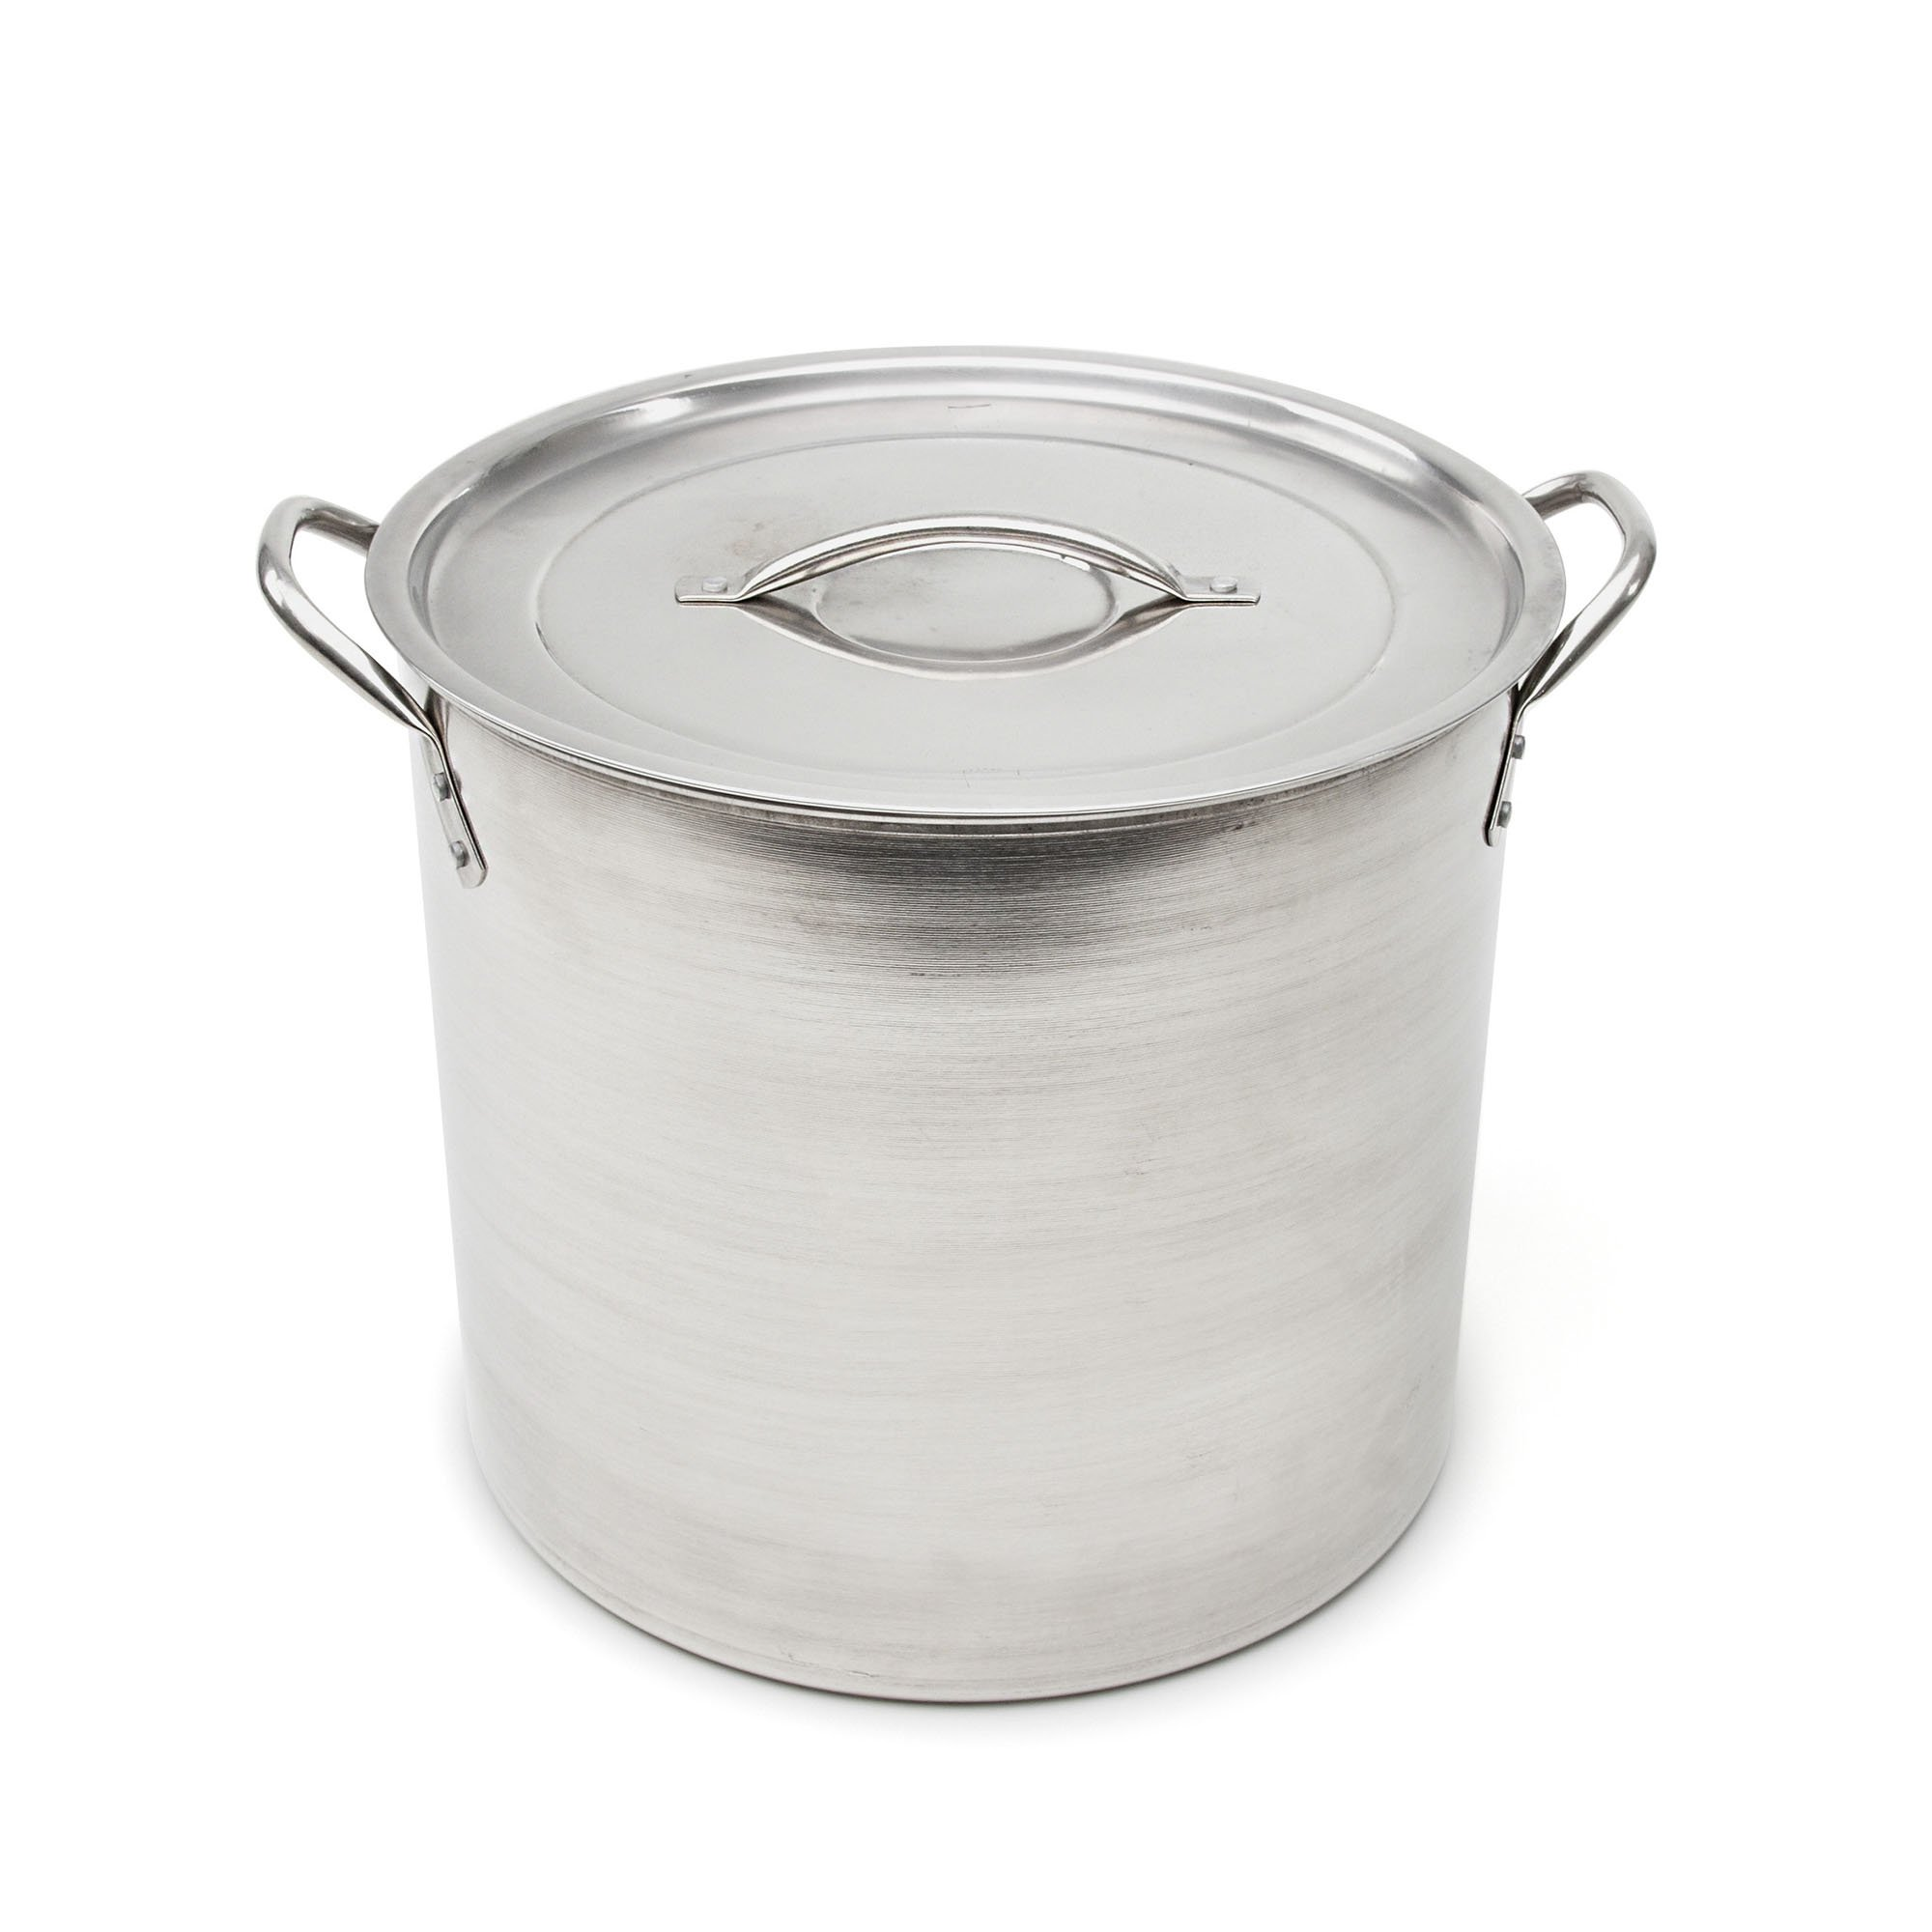 Good Cook 06182 Kitchen Basics Stainless Steel Stock Pot with Stainless Lid, 16 quart, Silver